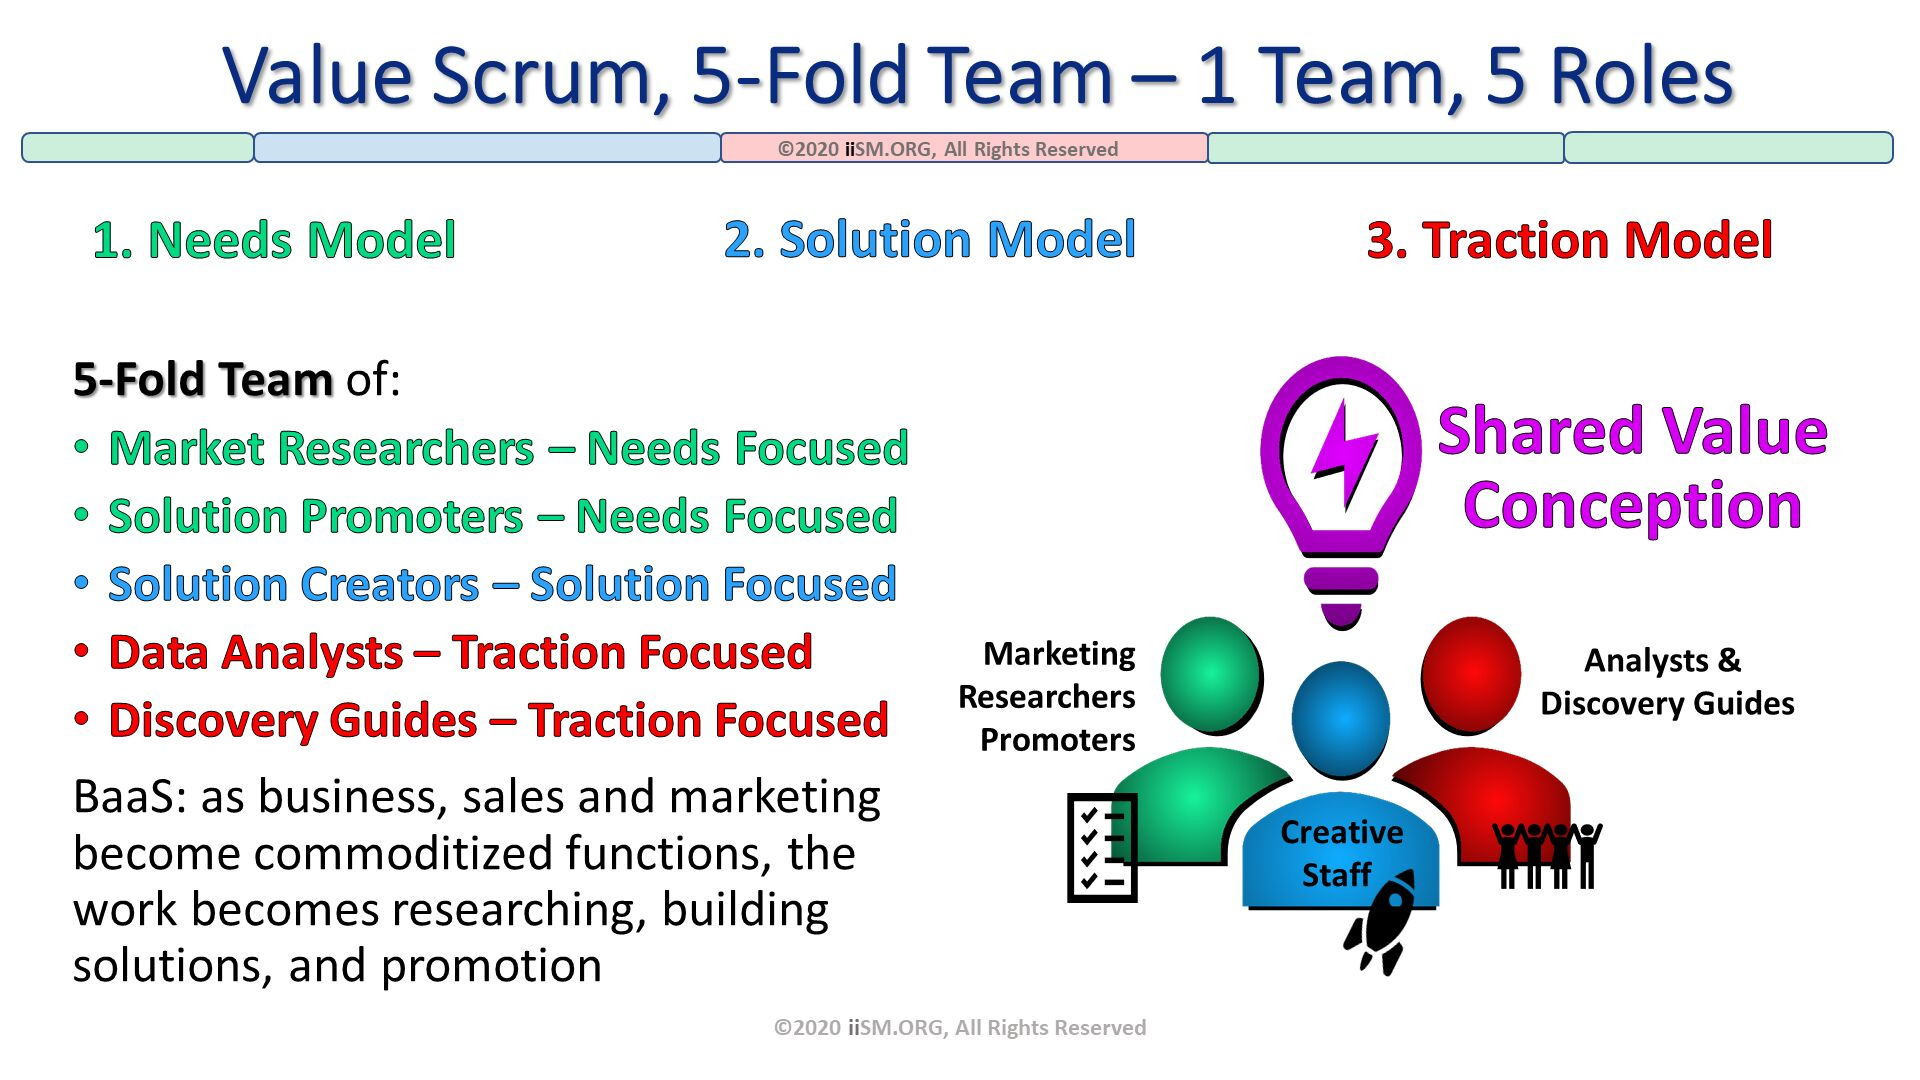 Value Scrum, 5-Fold Team – 1 Team, 5 Roles. ©2020 iiSM.ORG, All Rights Reserved. 3. Traction Model. 1. Needs Model. 5-Fold Team of: Market Researchers – Needs Focused Solution Promoters – Needs Focused Solution Creators – Solution Focused Data Analysts – Traction Focused Discovery Guides – Traction Focused BaaS: as business, sales and marketing become commoditized functions, the work becomes researching, building solutions, and promotion . ©2020 iiSM.ORG, All Rights Reserved. 2. Solution Model. Analysts & Discovery Guides. MarketingResearchers Promoters. CreativeStaff .